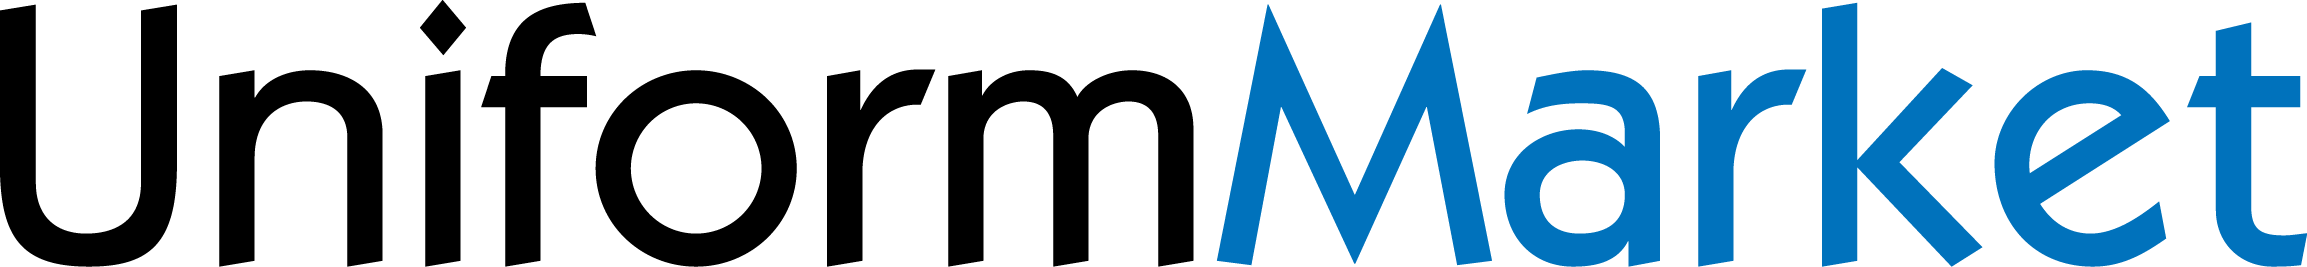 um-logo-large-transparent